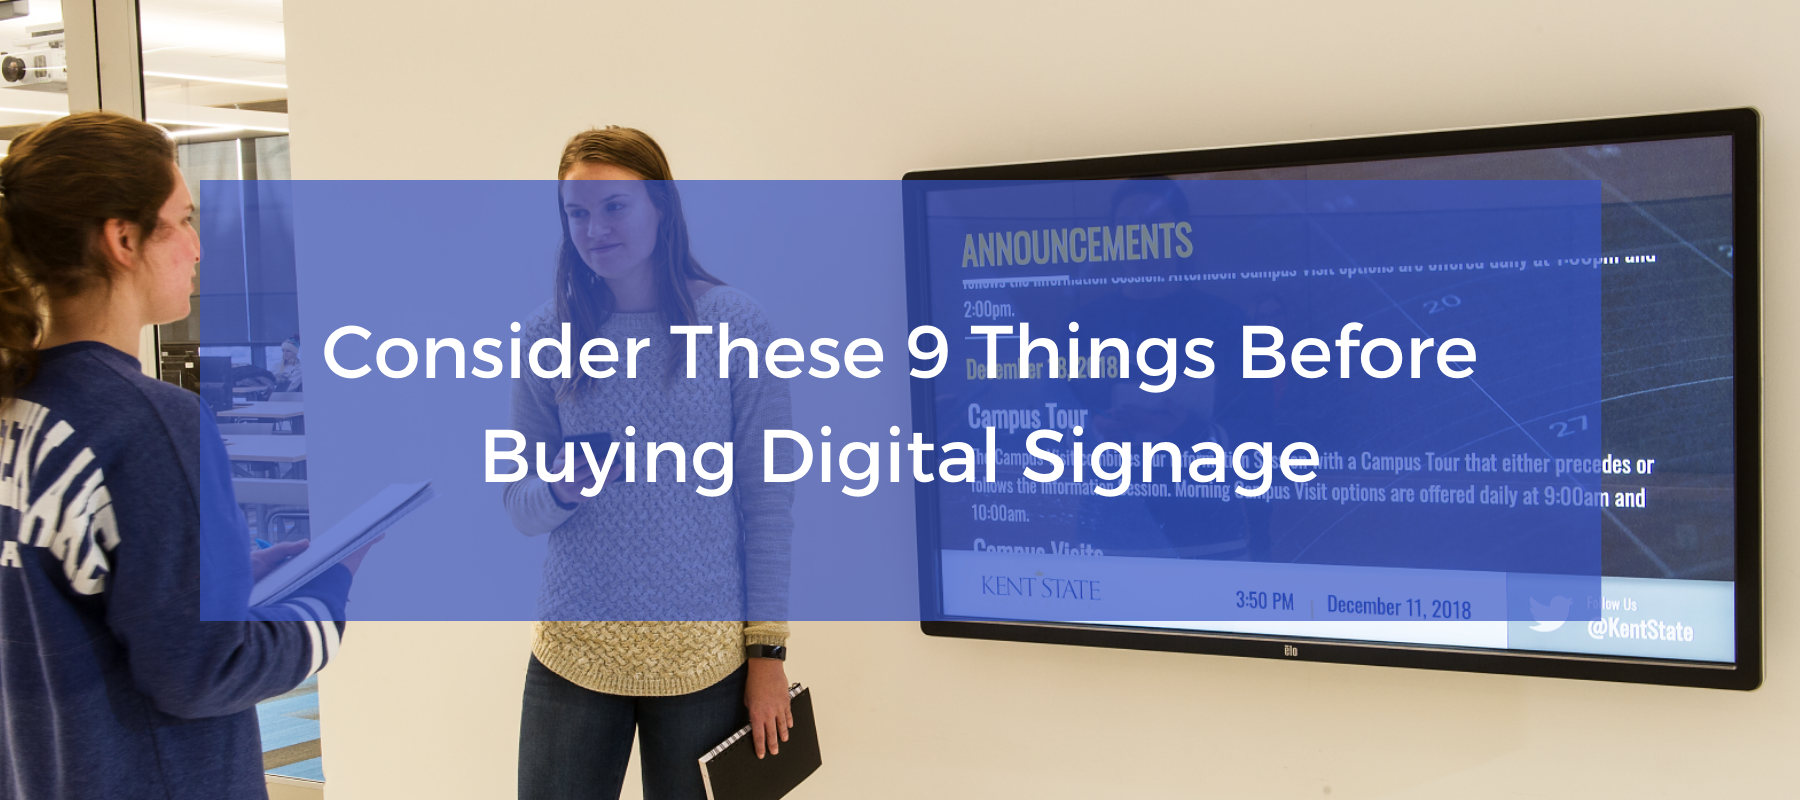 Consider These 9 Things Before Buying Digital Signage